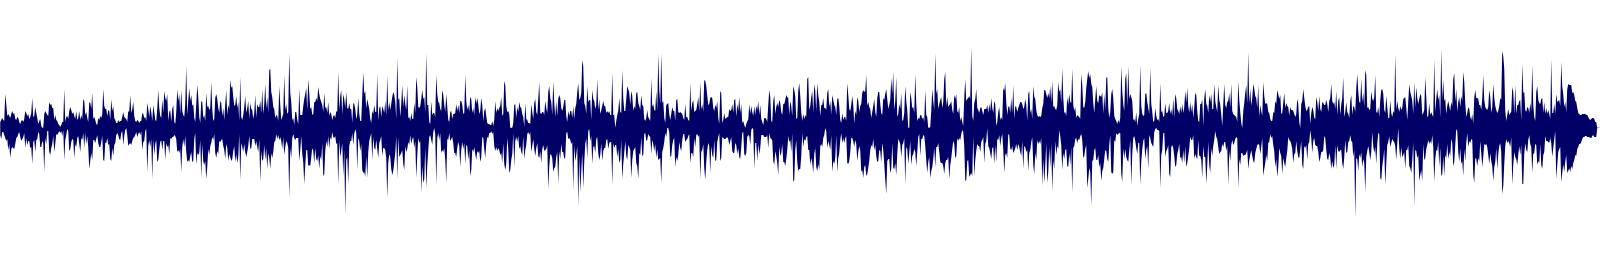 waveform of track #146227